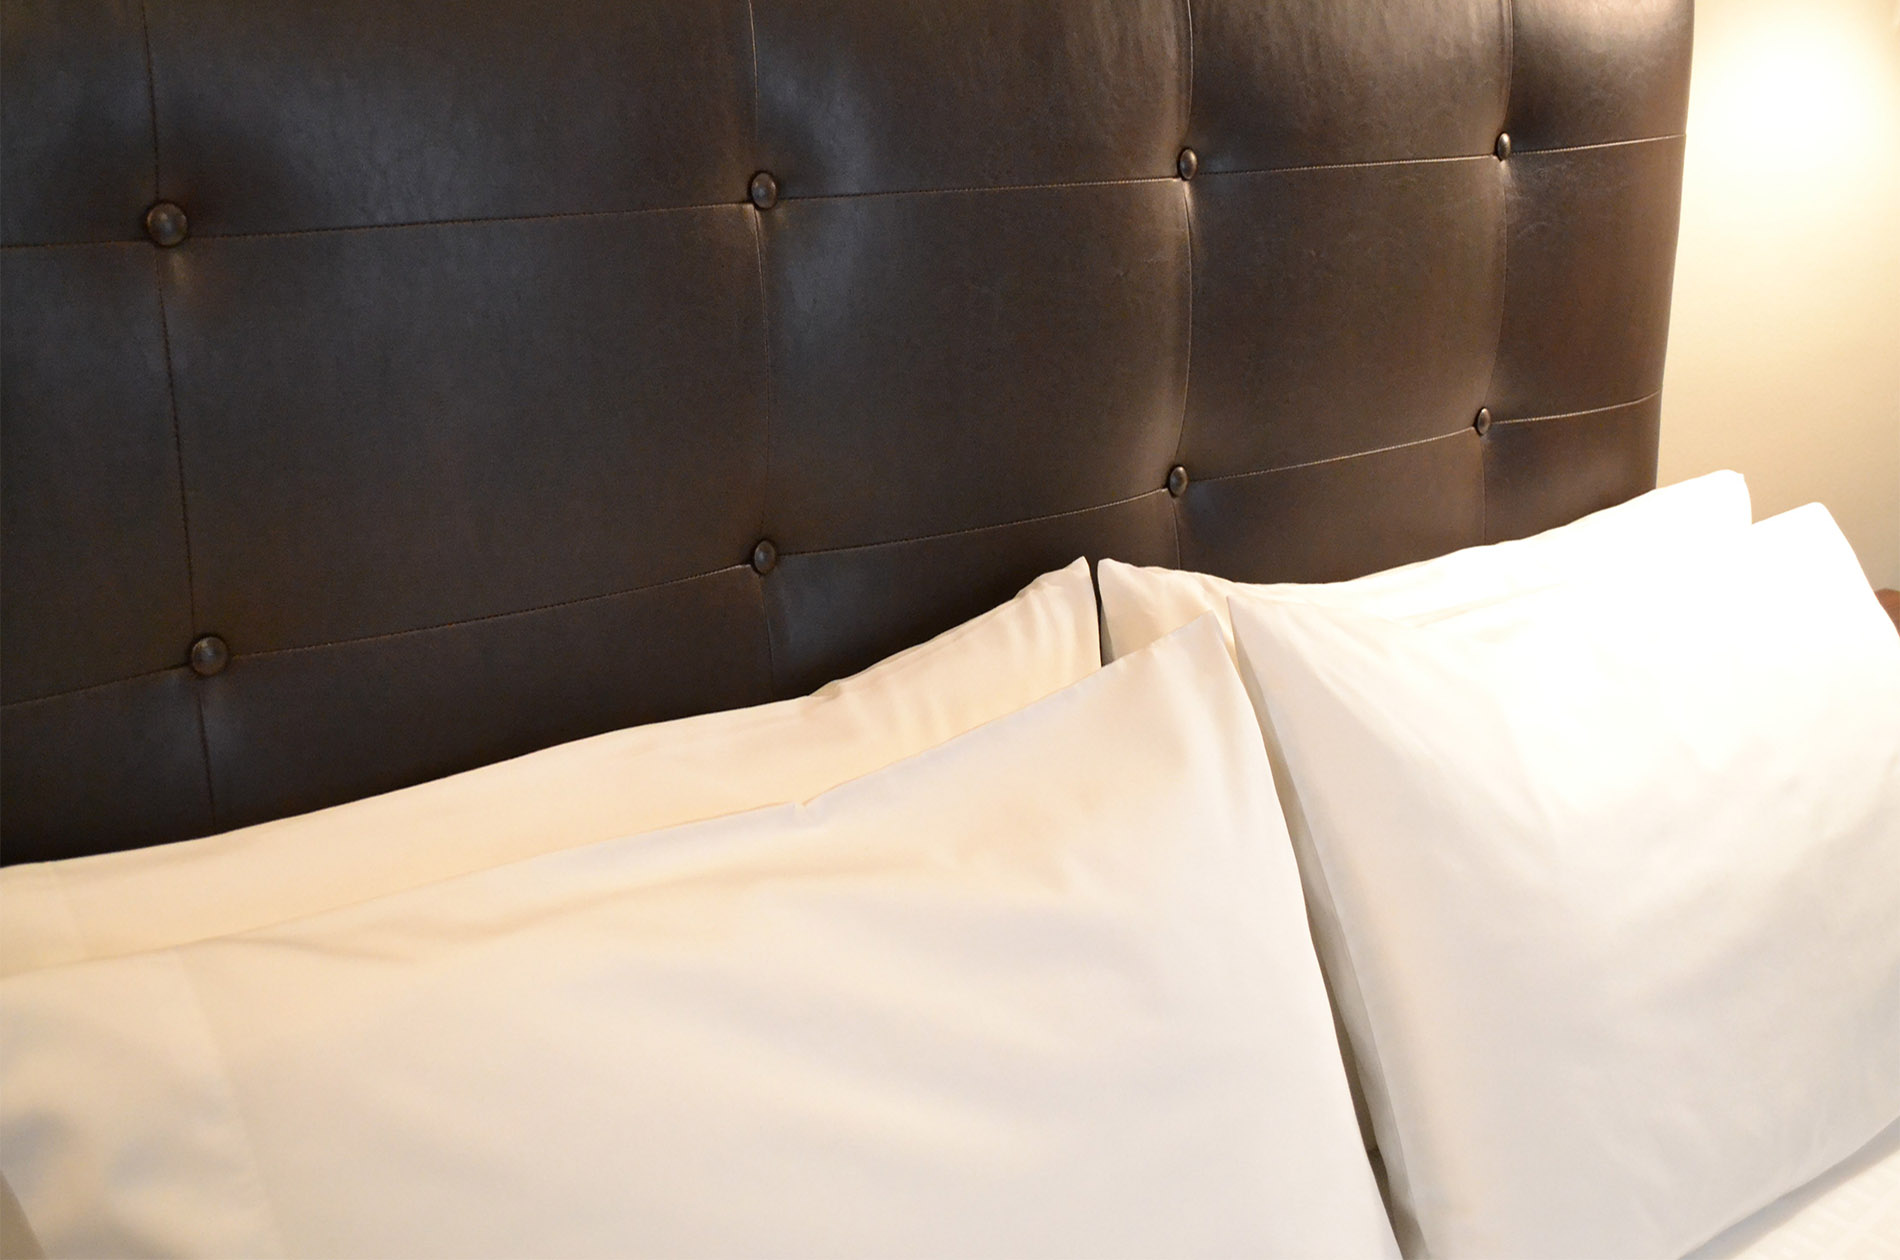 Dark brown headboard of bed contrasted with fluffy white pillows.